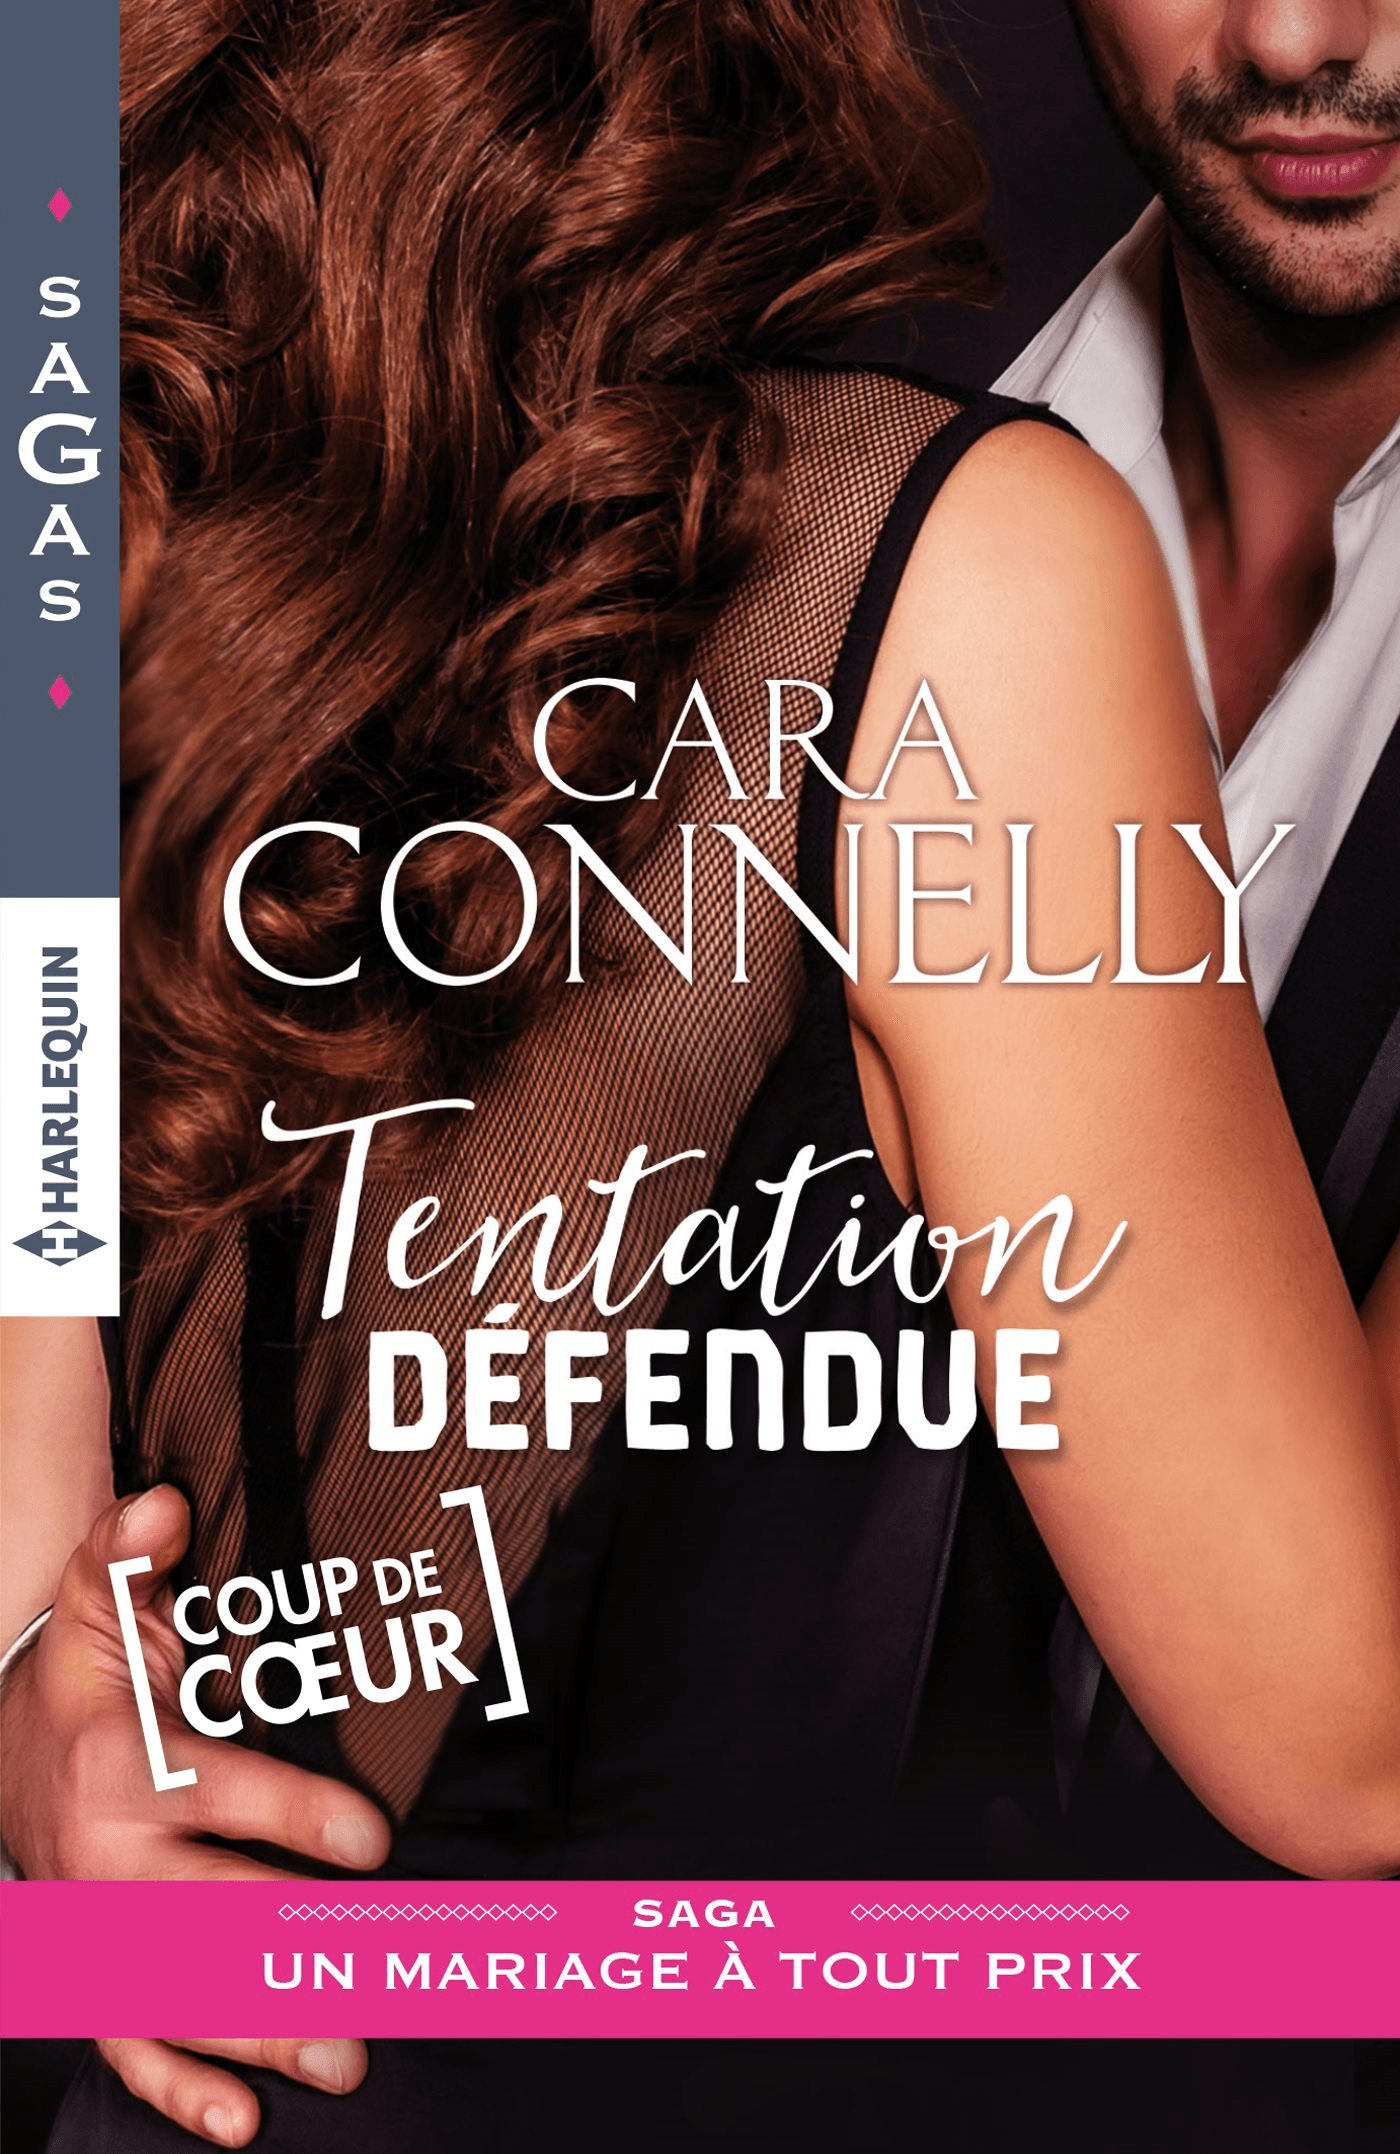 Couverture : CARA CONNELLY, Tentation défendue, Harlequin